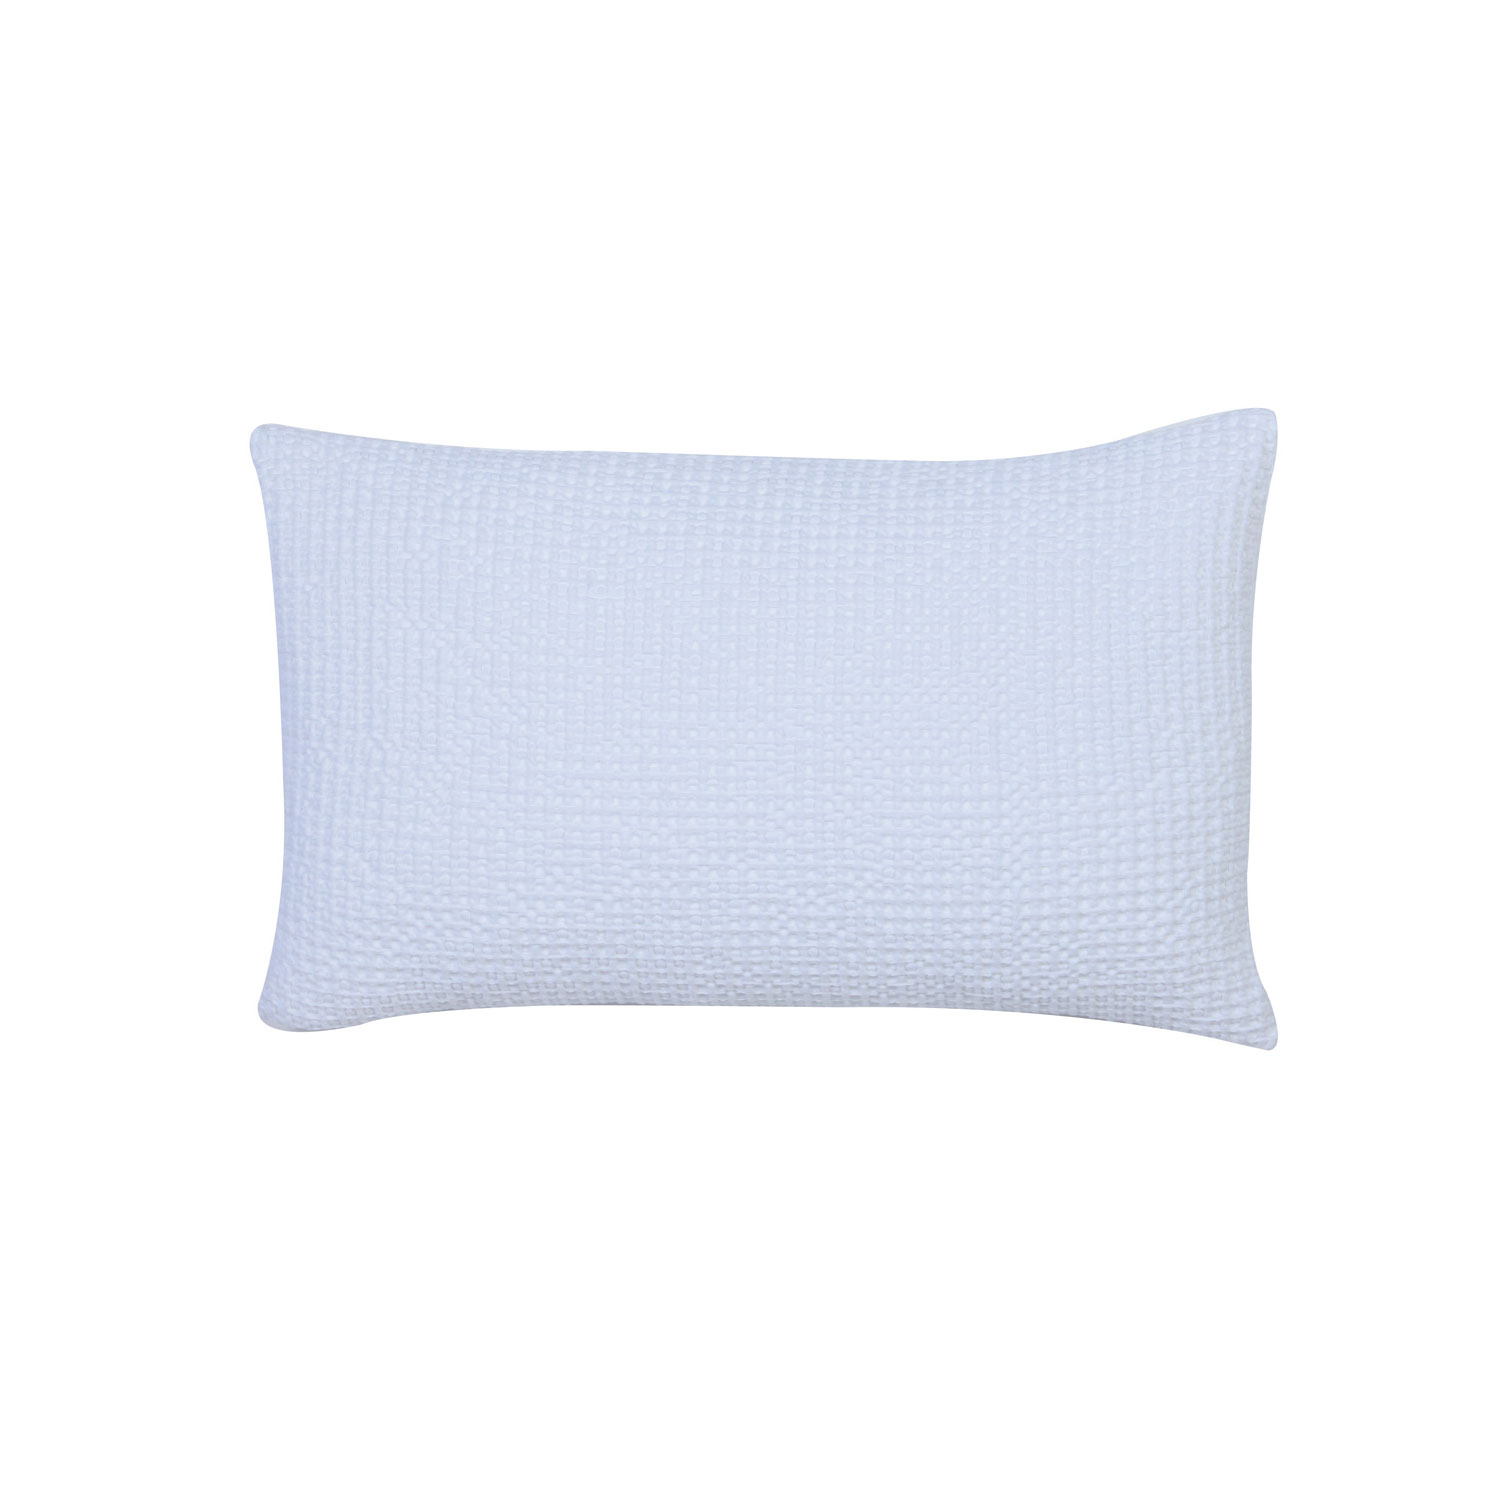 Coussin  en coton blanc 30 x 50 (photo)